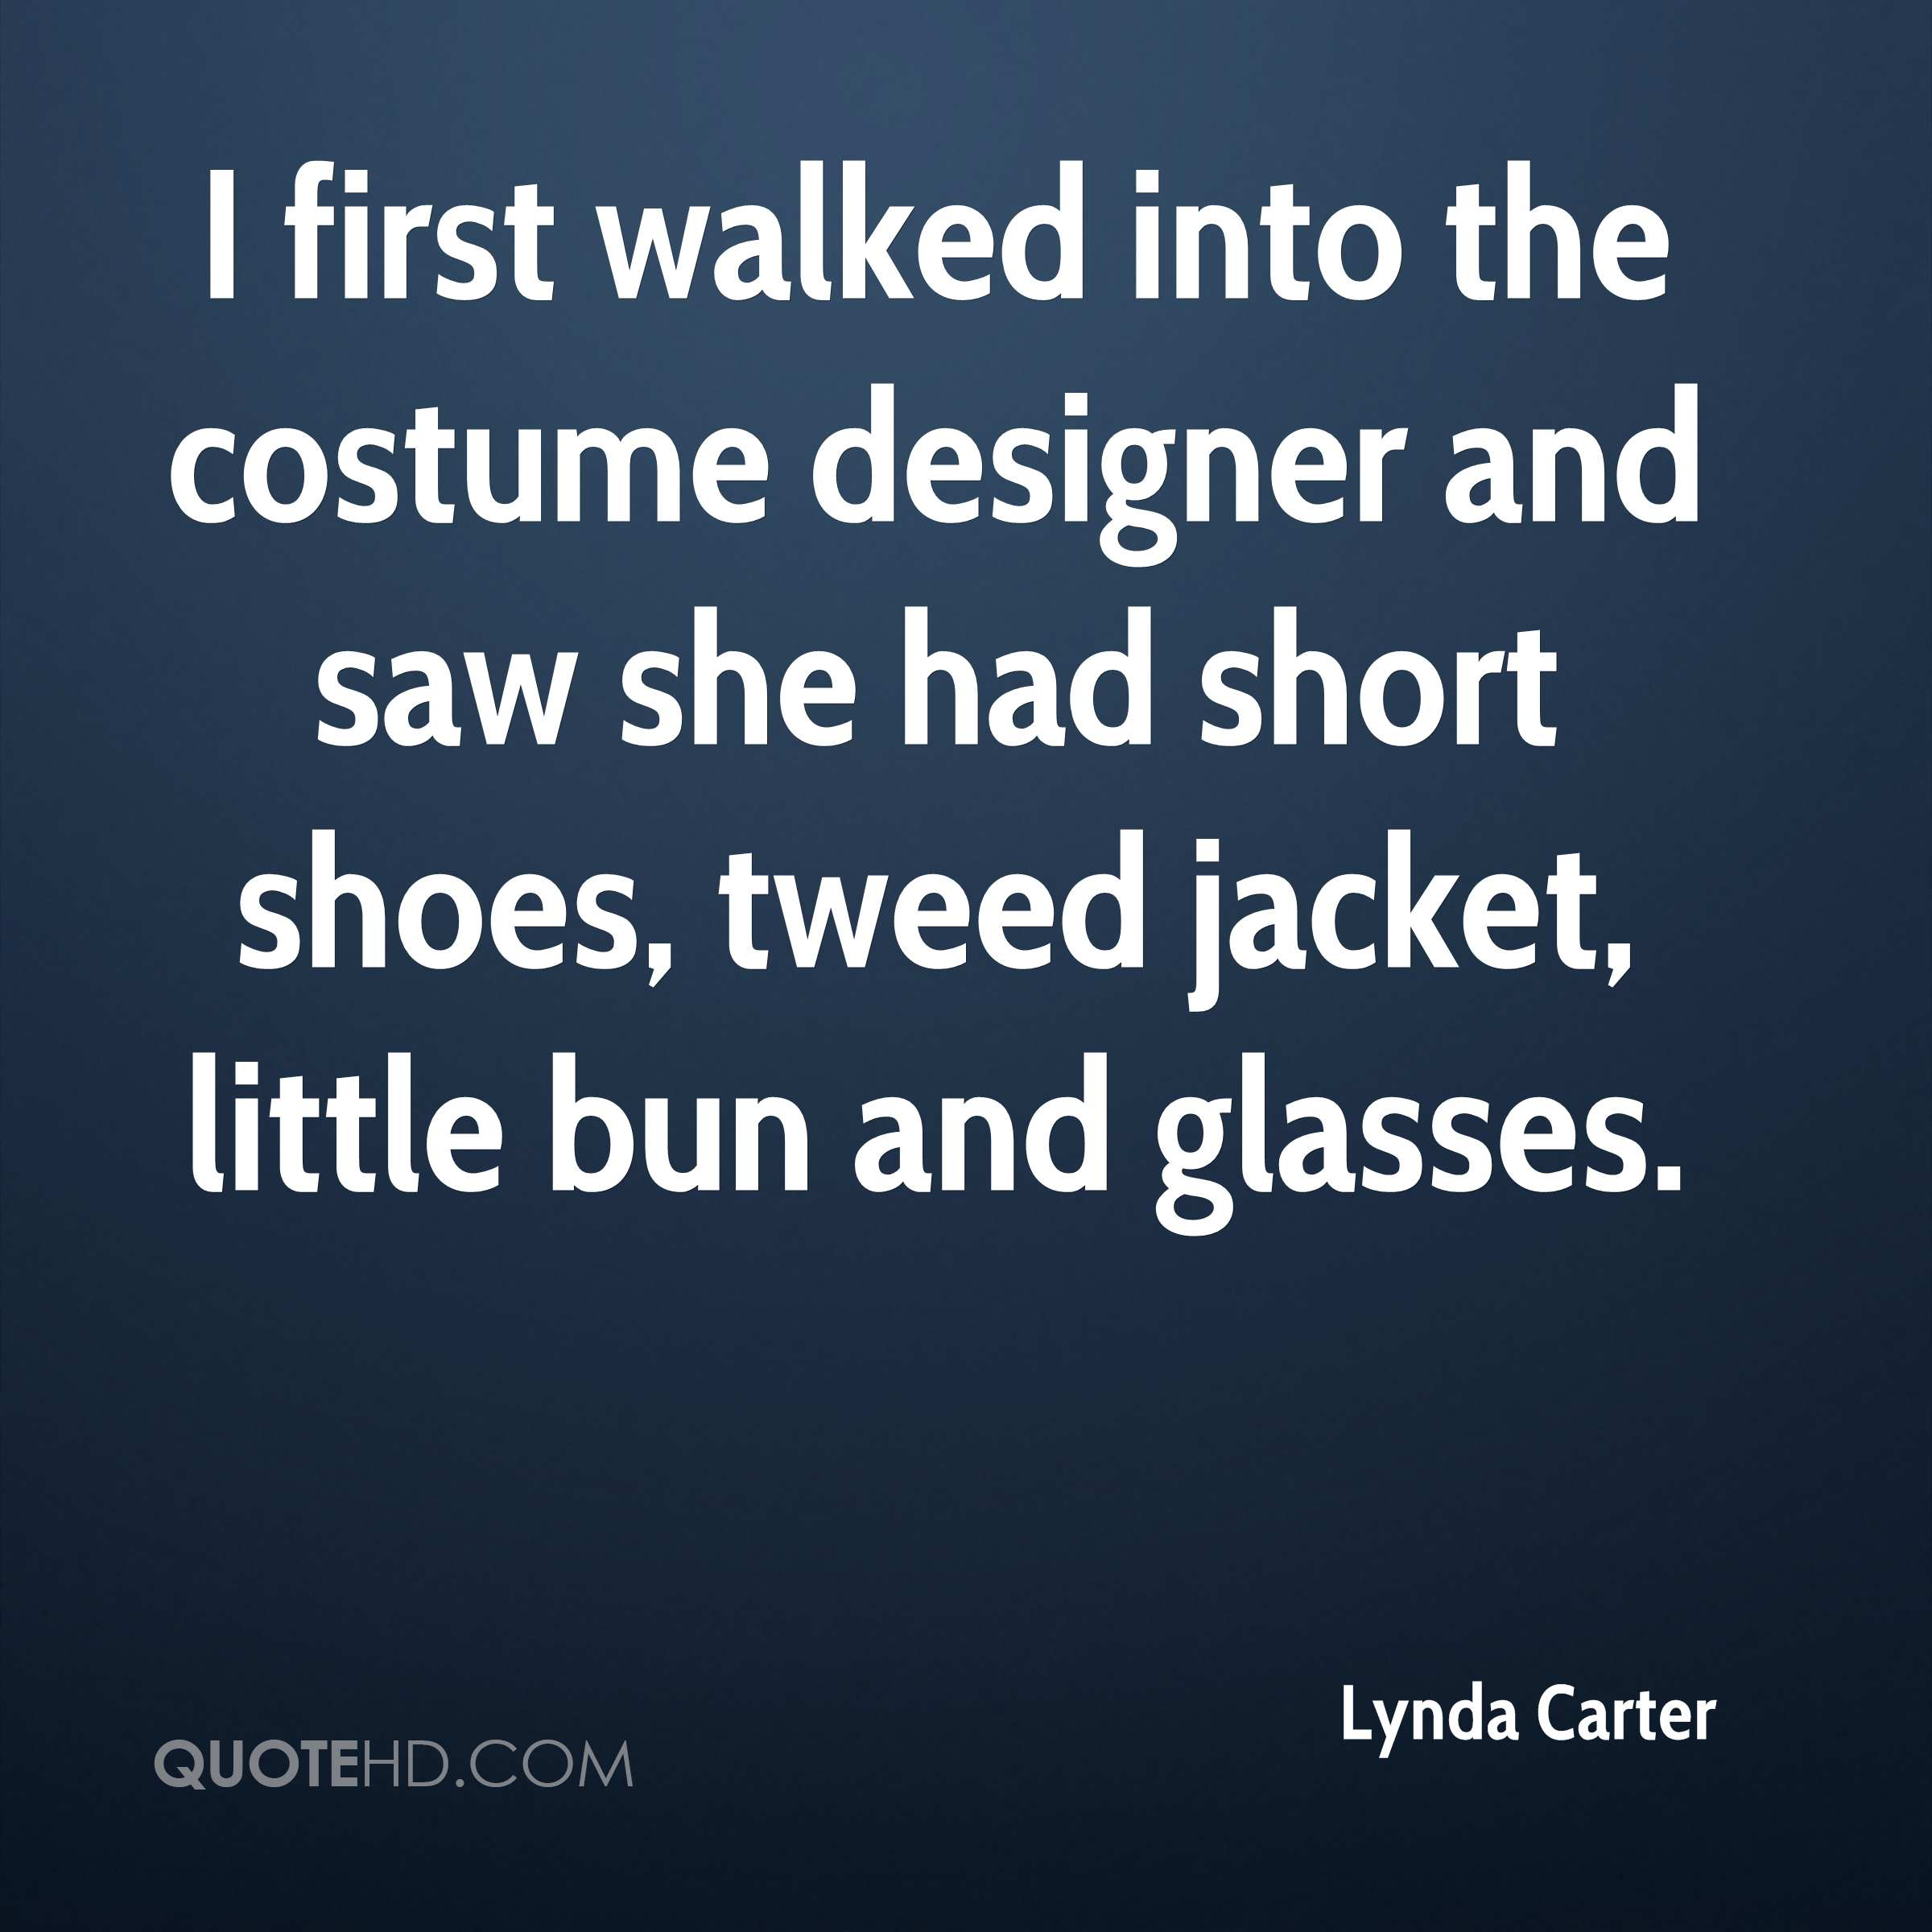 I first walked into the costume designer and saw she had short shoes, tweed jacket, little bun and glasses.